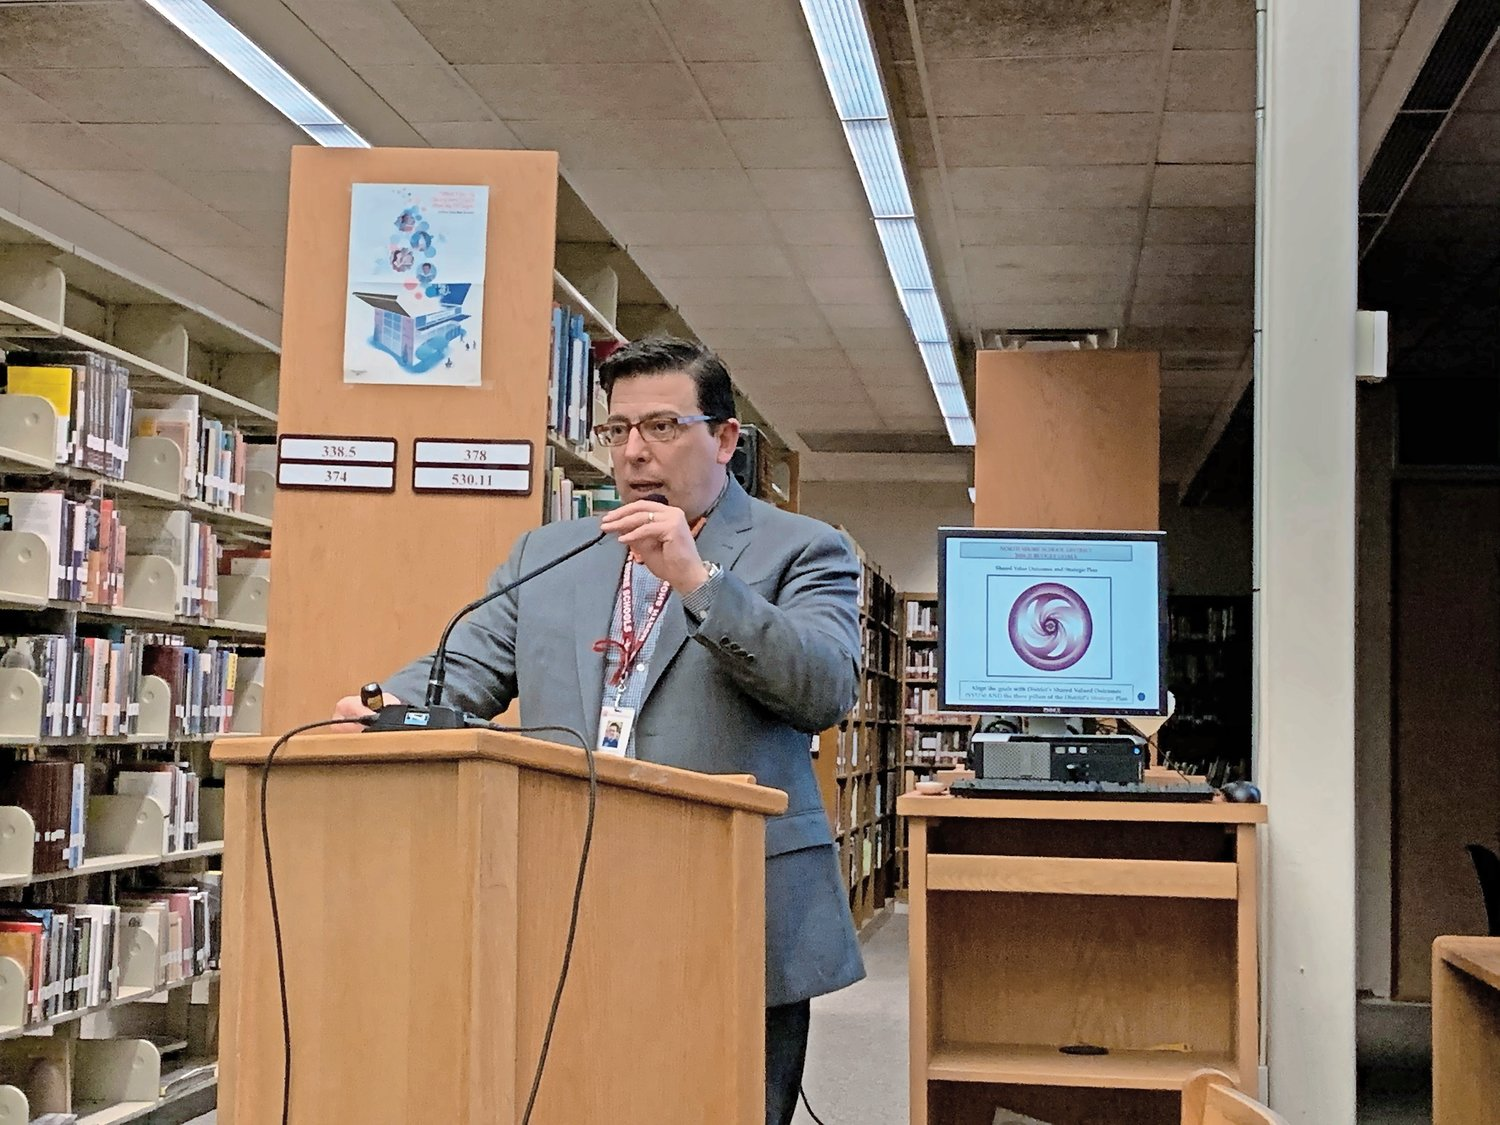 Superintendent Dr. Peter Giarrizzo received a positive response from the North Shore School District Board of Education as he made his budget presentation.